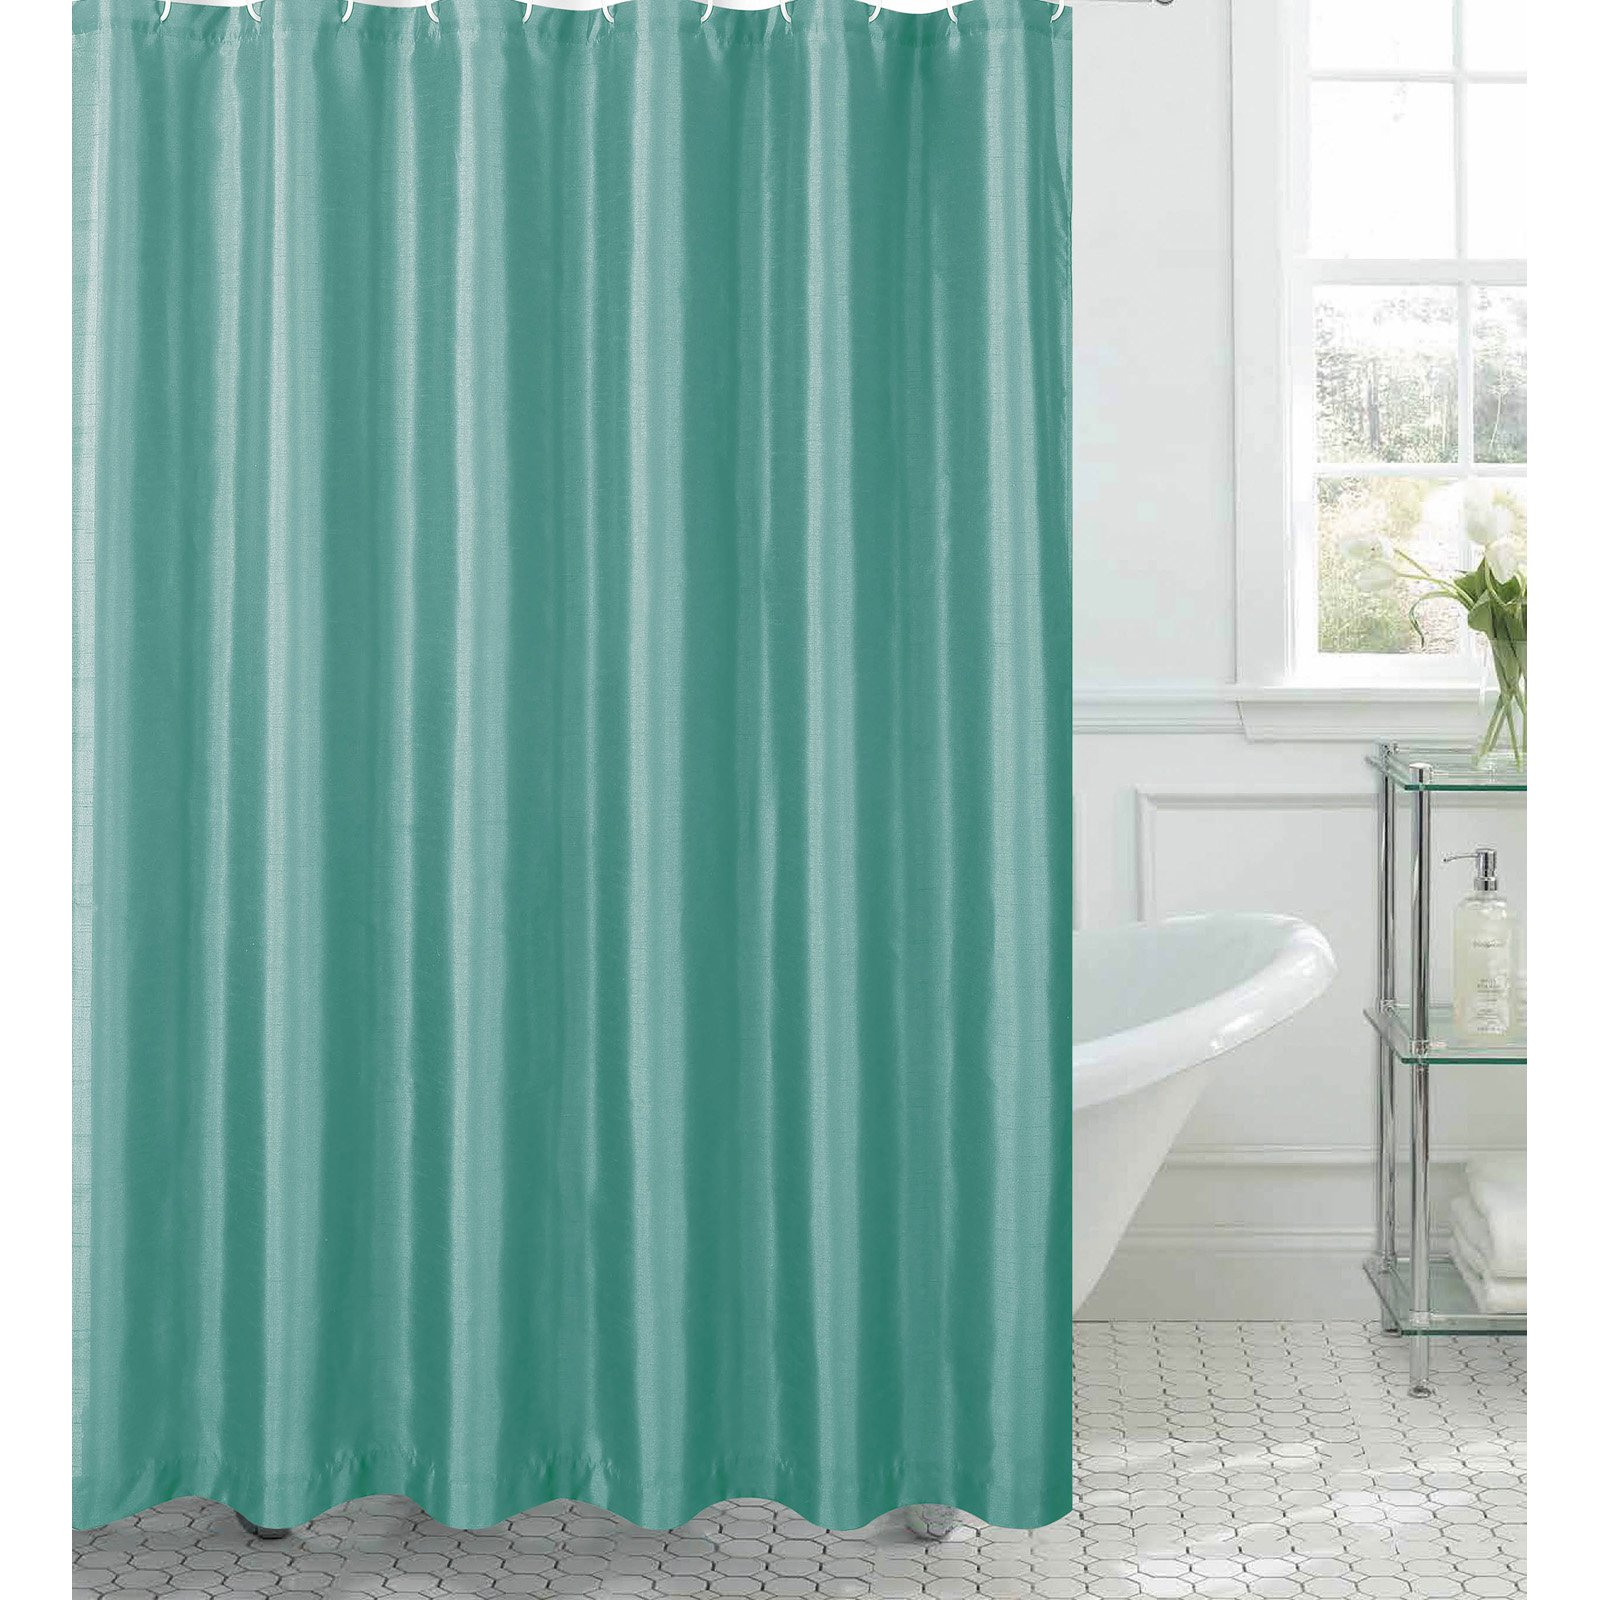 Exceptional Jane Faux Silk Shower Curtain With 12 Metal Rings